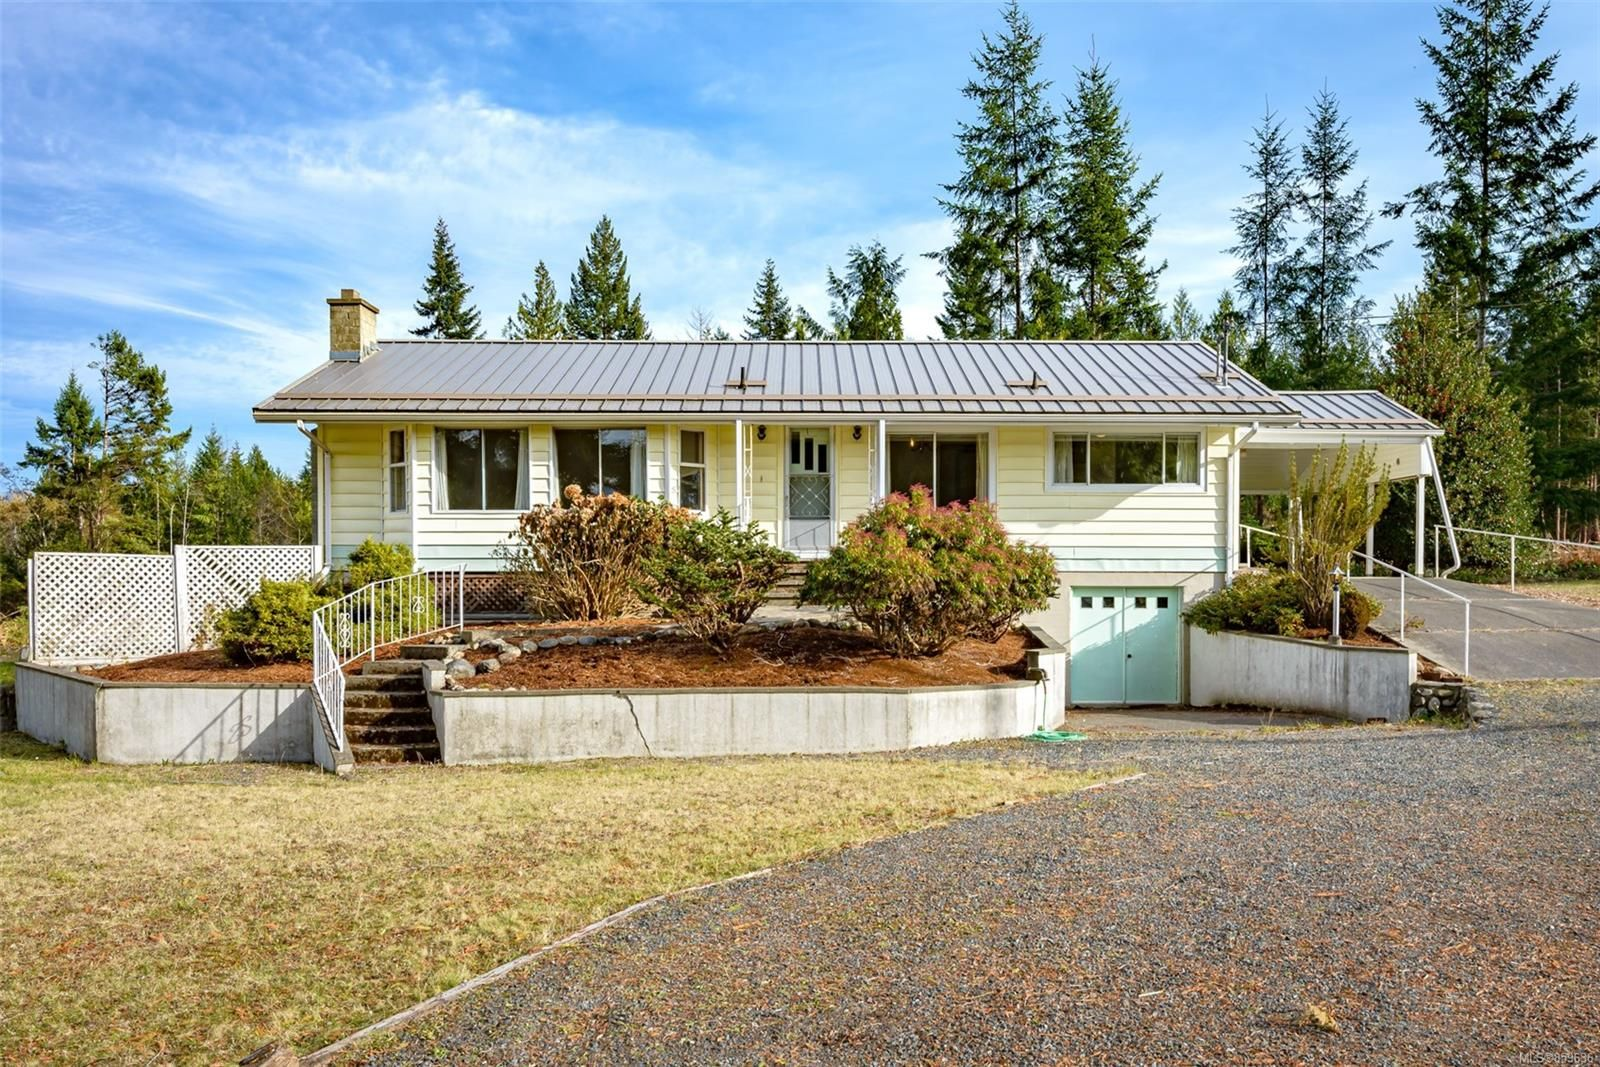 Main Photo: 421 Boorman Rd in : PQ Qualicum North House for sale (Parksville/Qualicum)  : MLS®# 859636